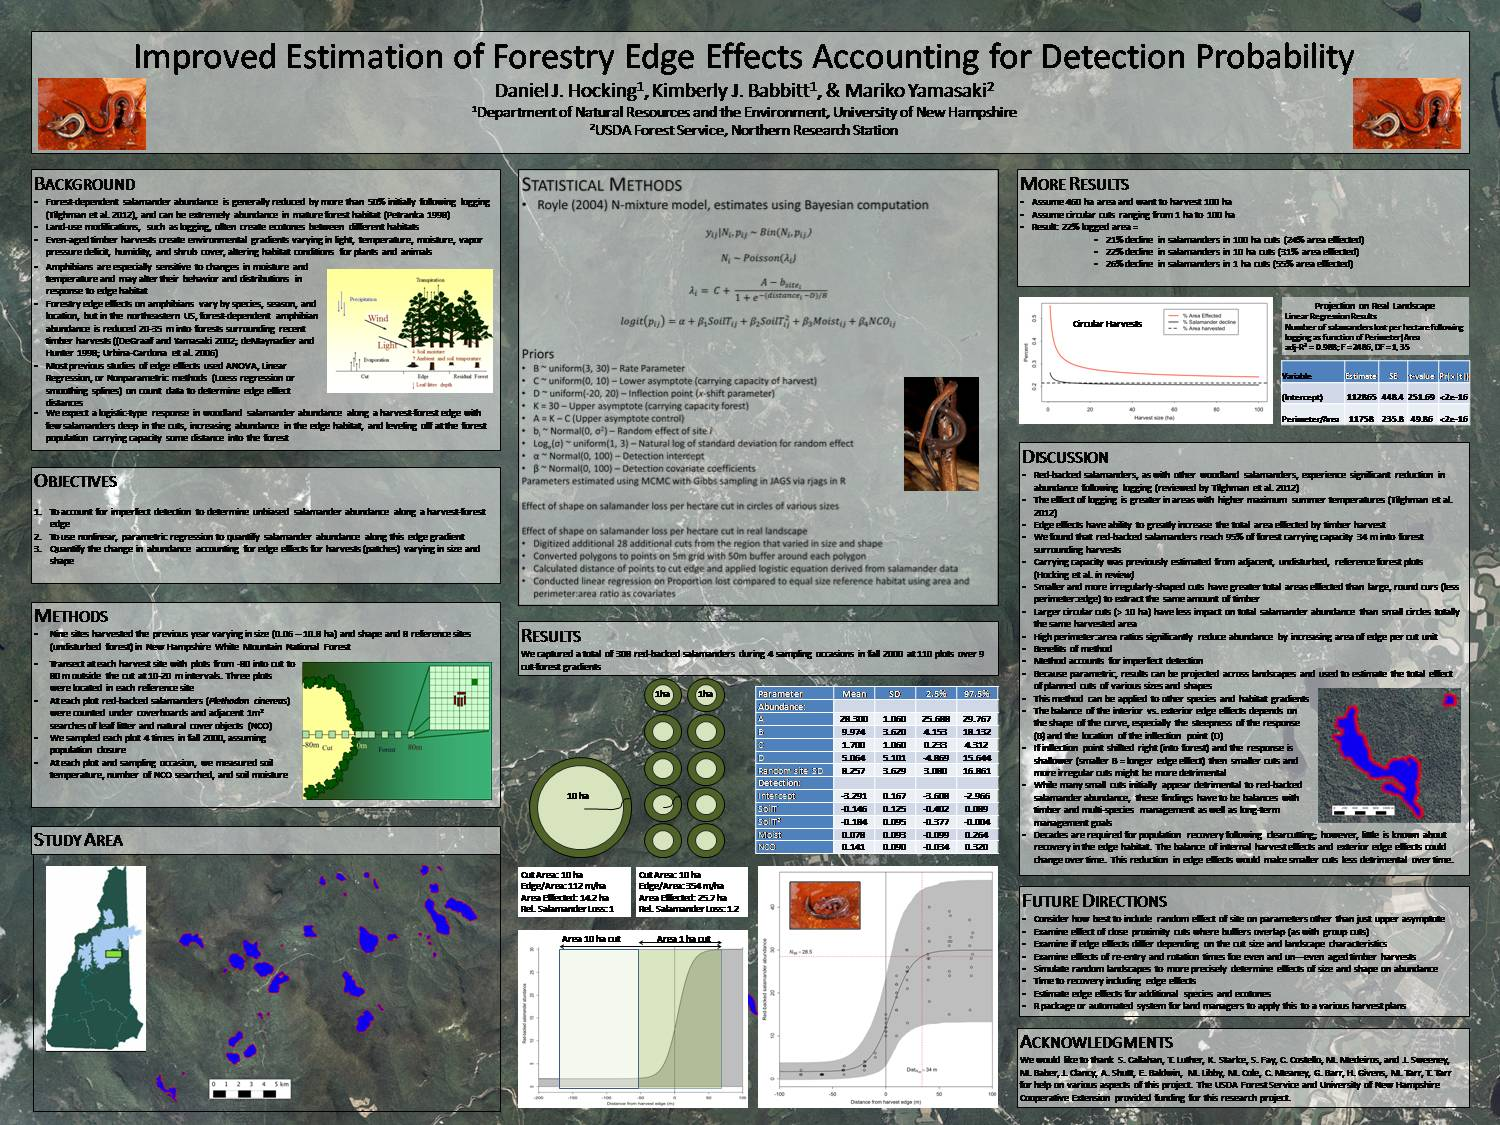 Improved Estimation Of Forestry Edge Effects Accounting For Detection Probability by dhocking